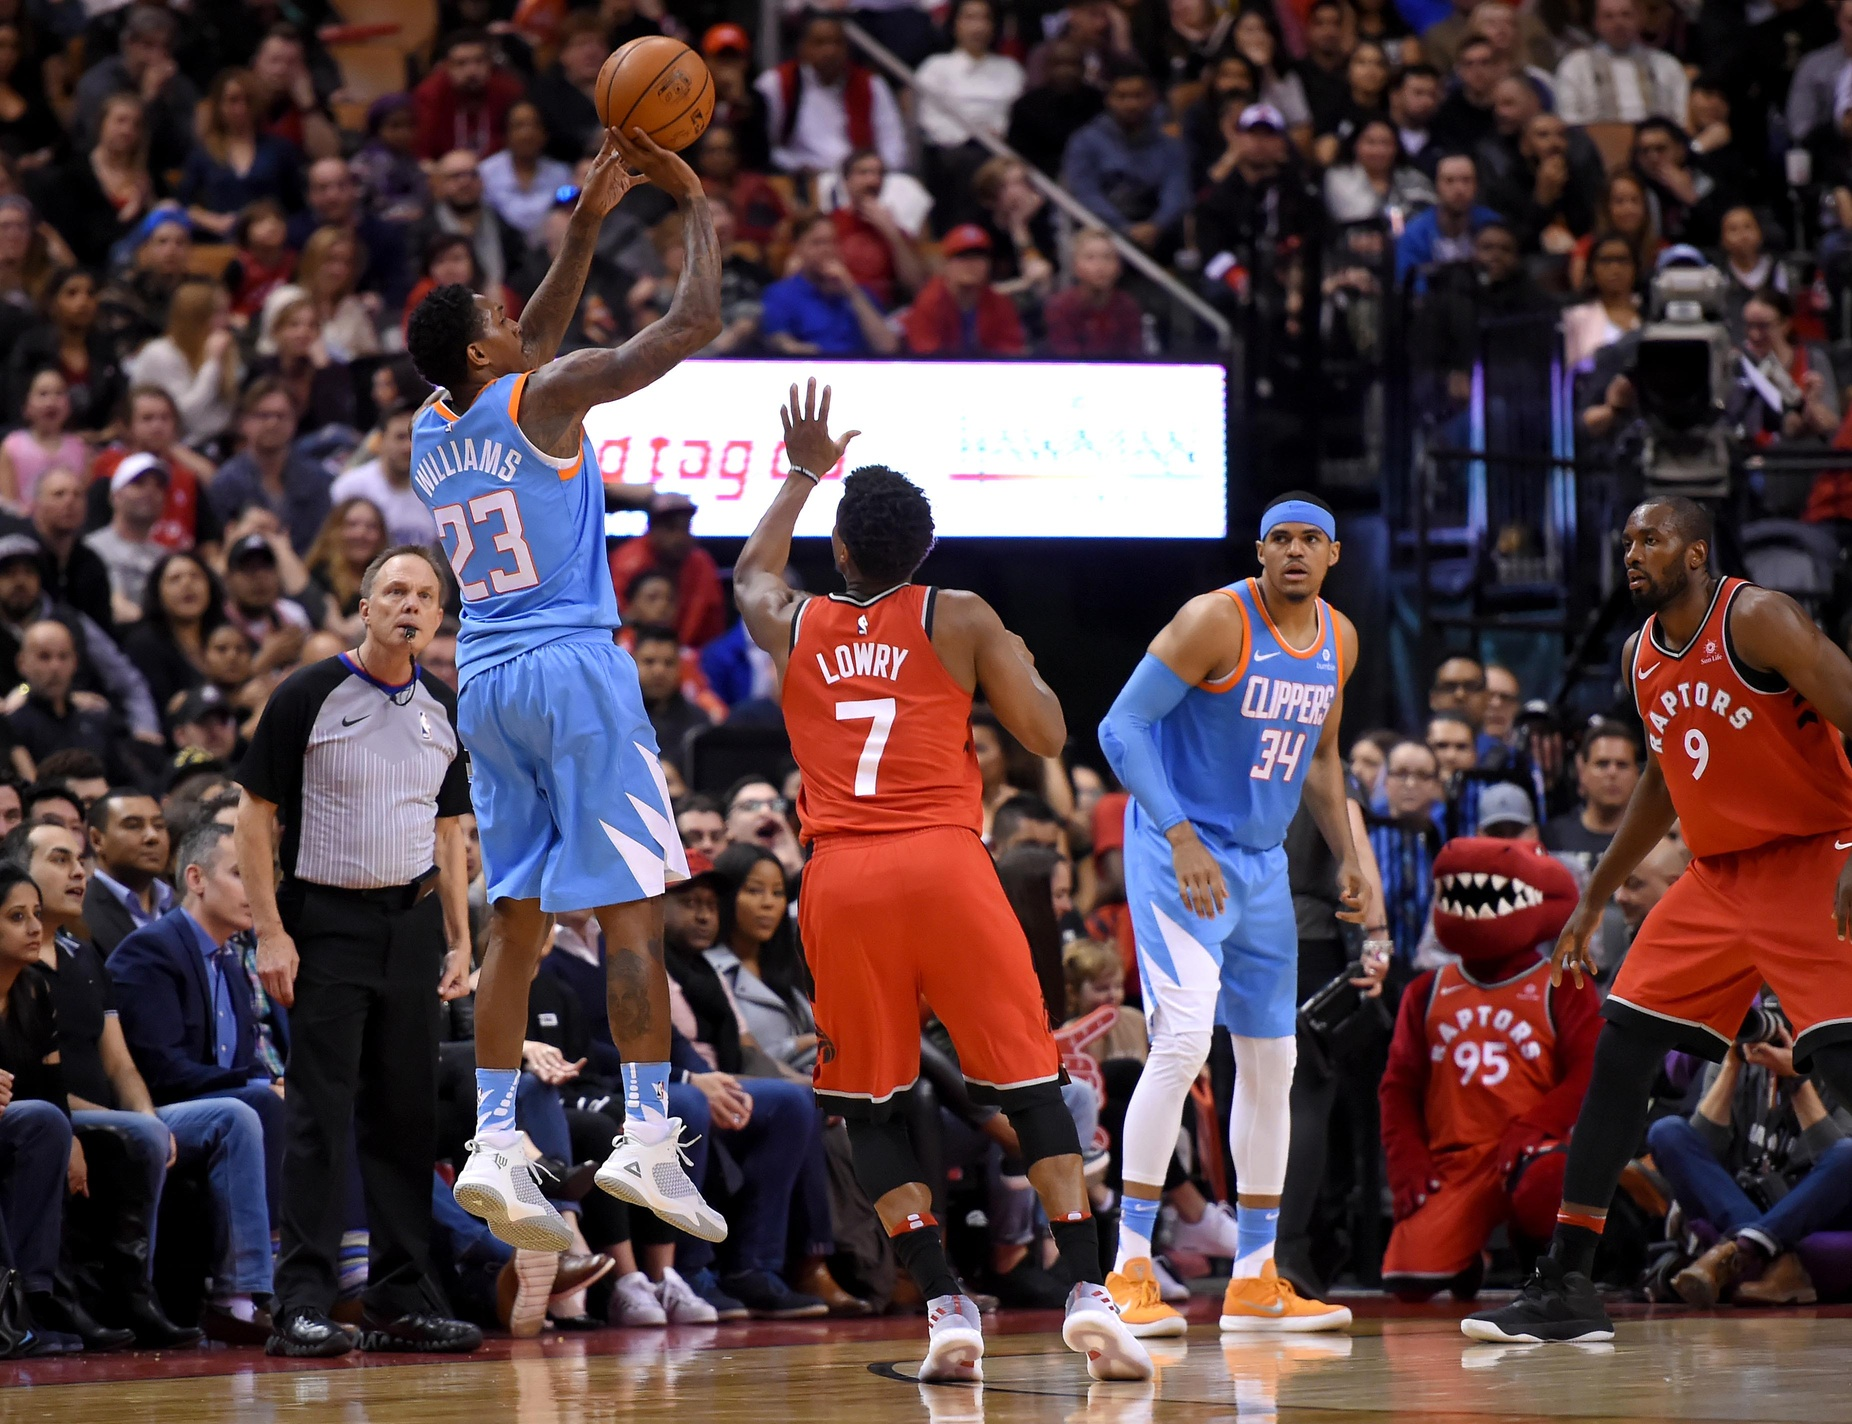 Clippers comeback from 18 in win against Raptors 117-106